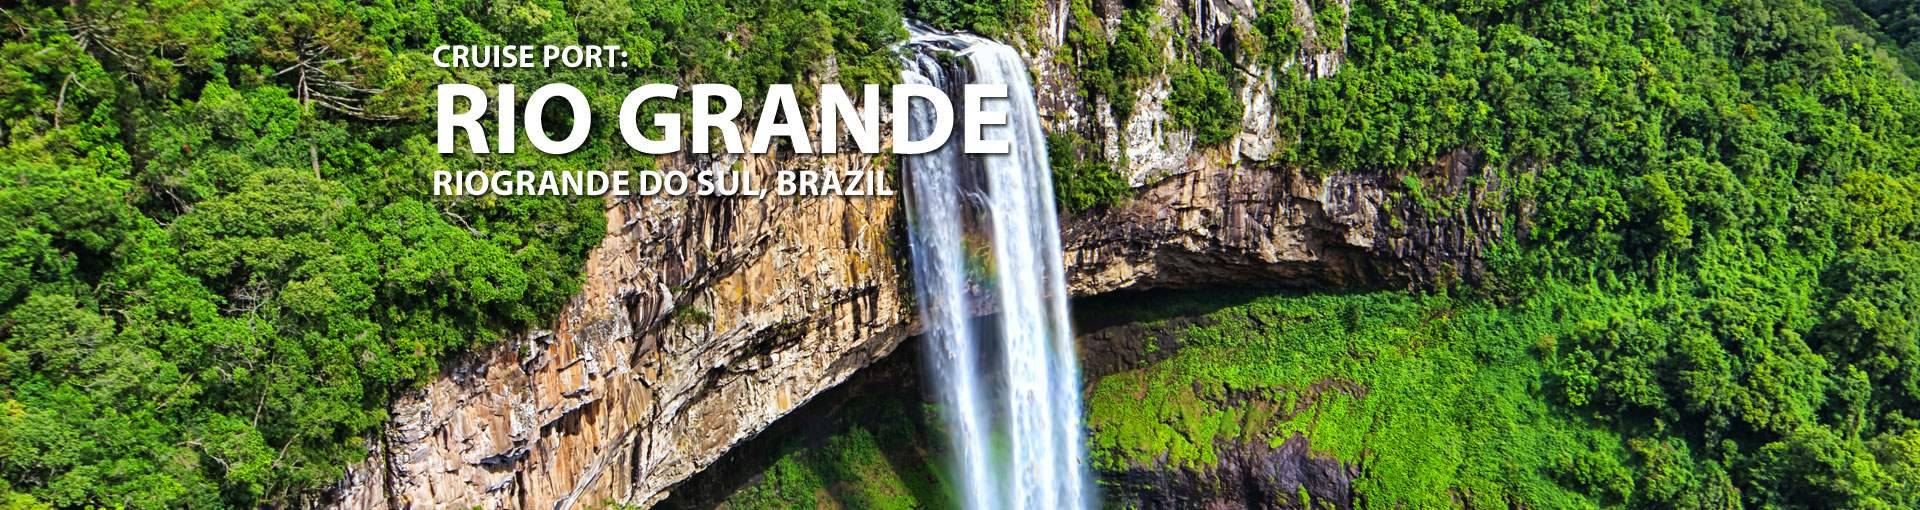 Cruises to Rio Grande, Rio Grande Do Sul, Brazil